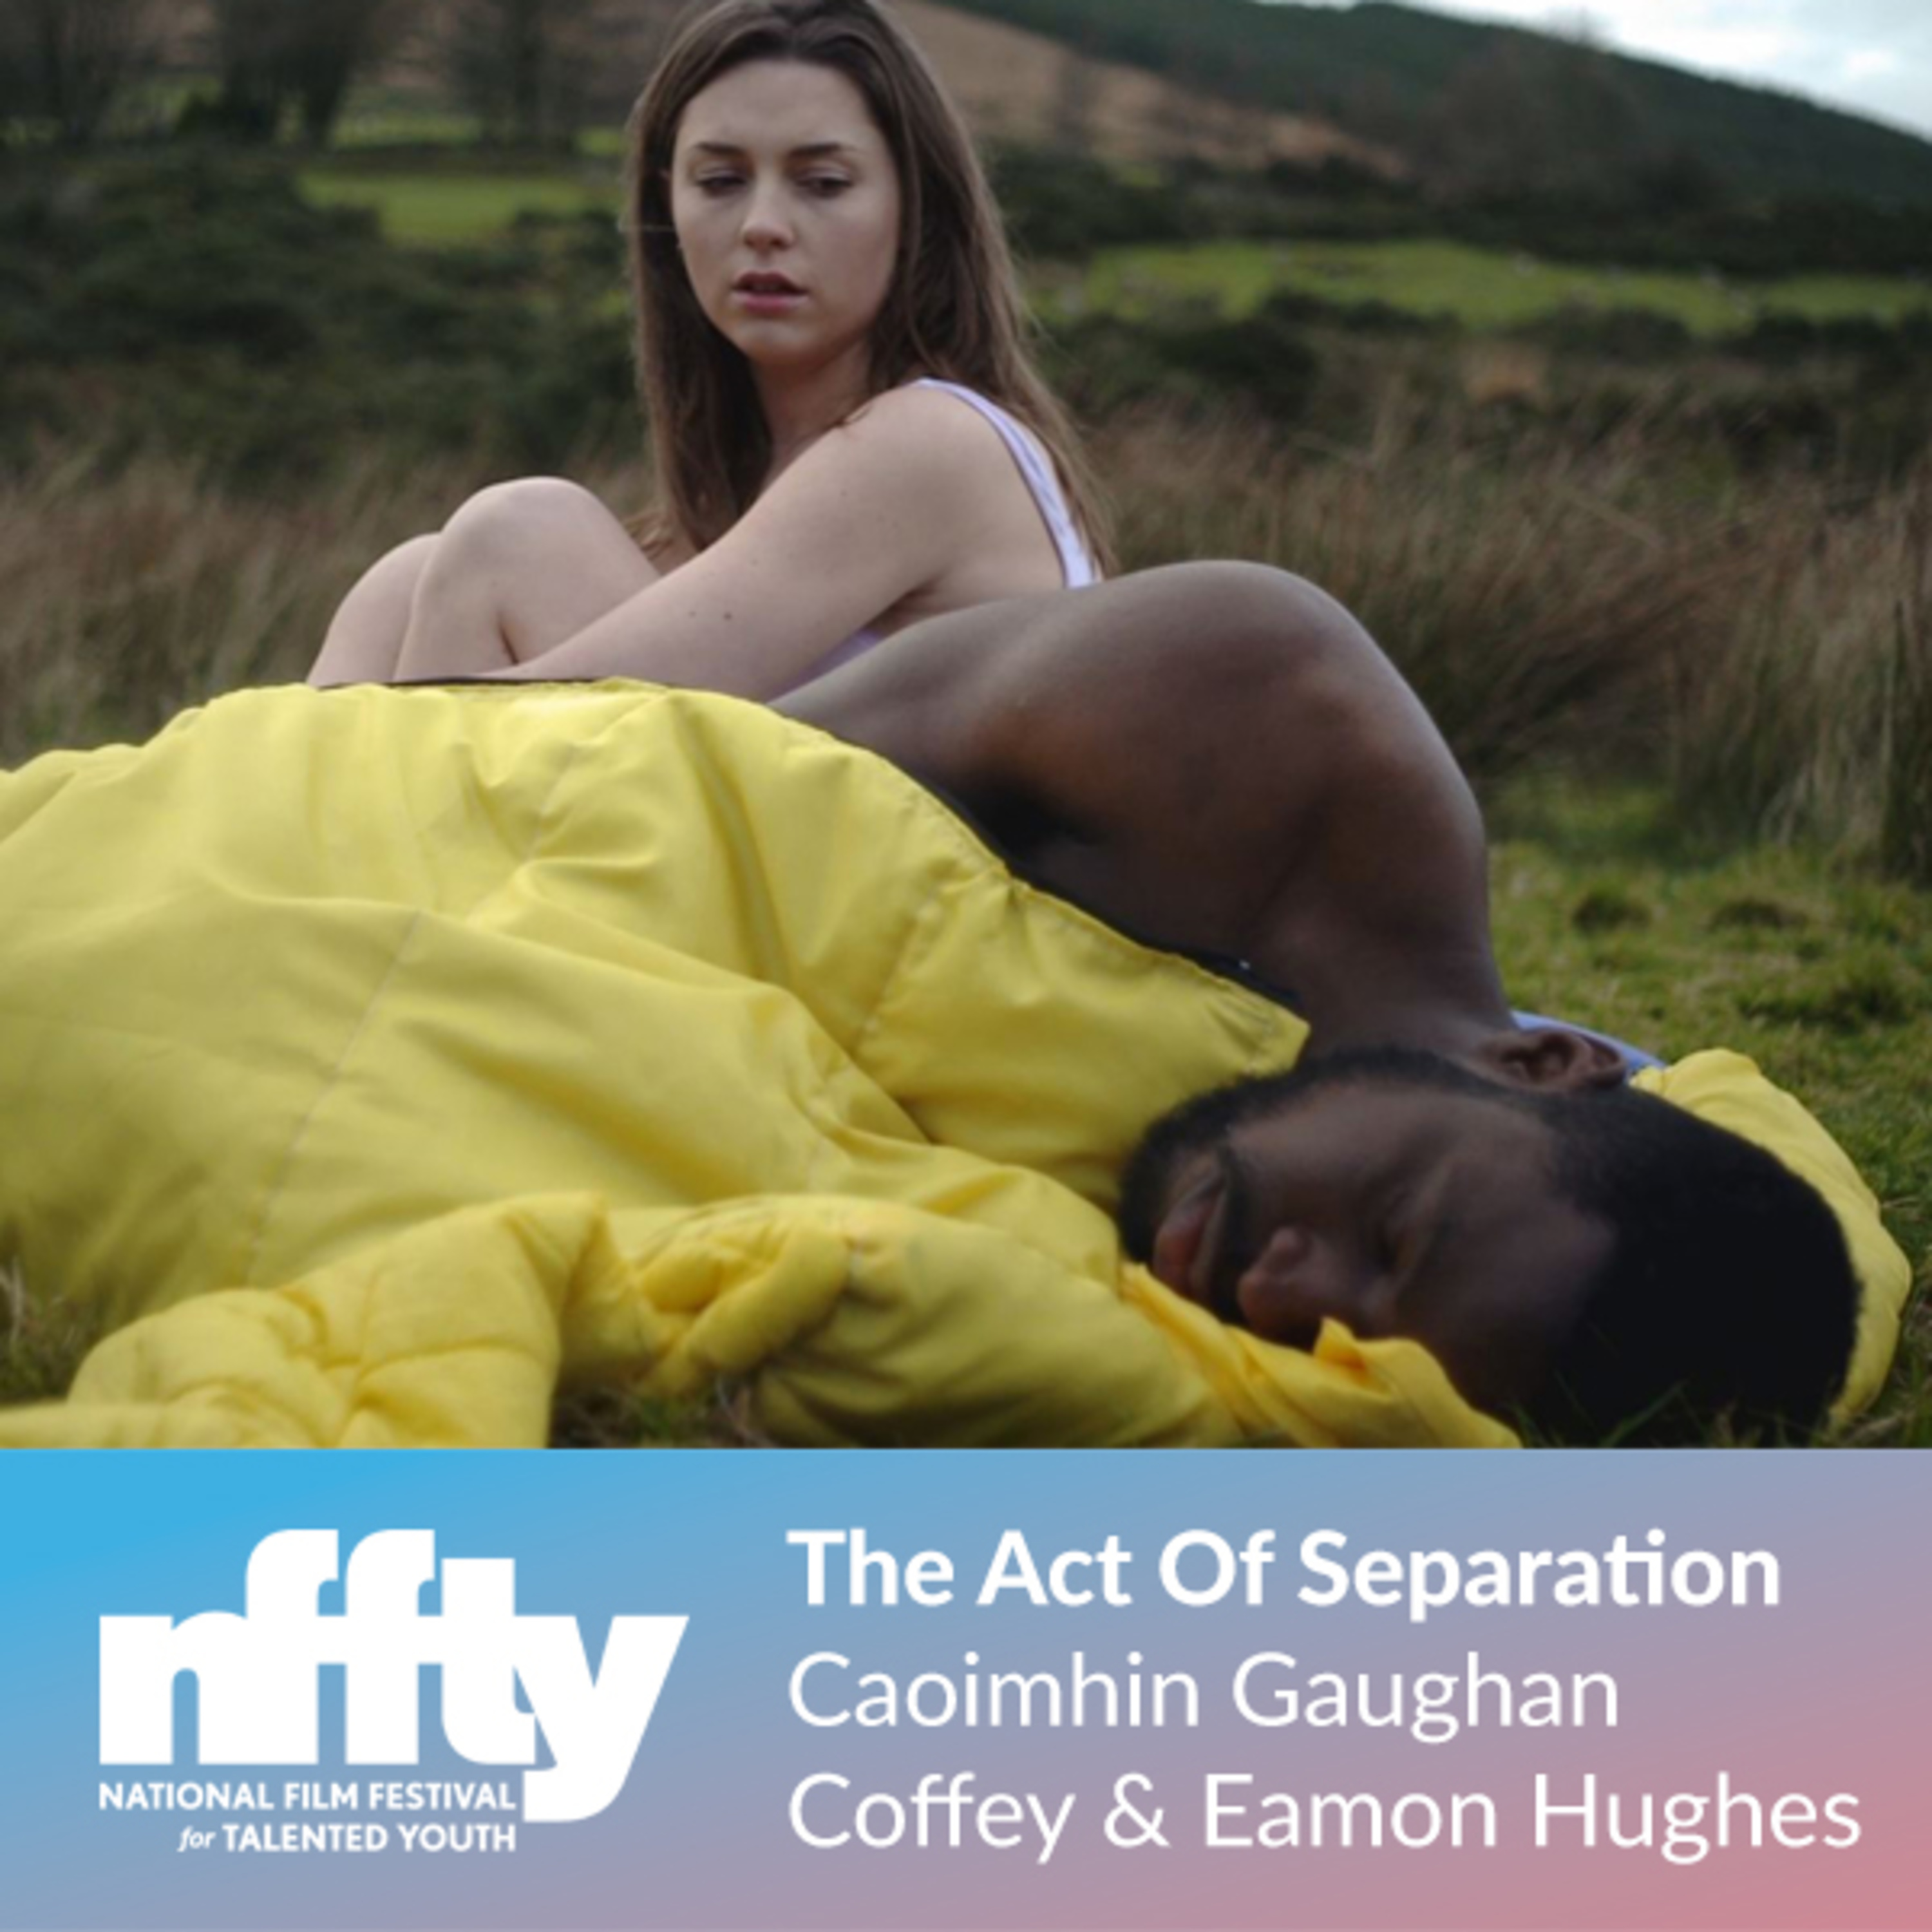 132: The Act Of Separation